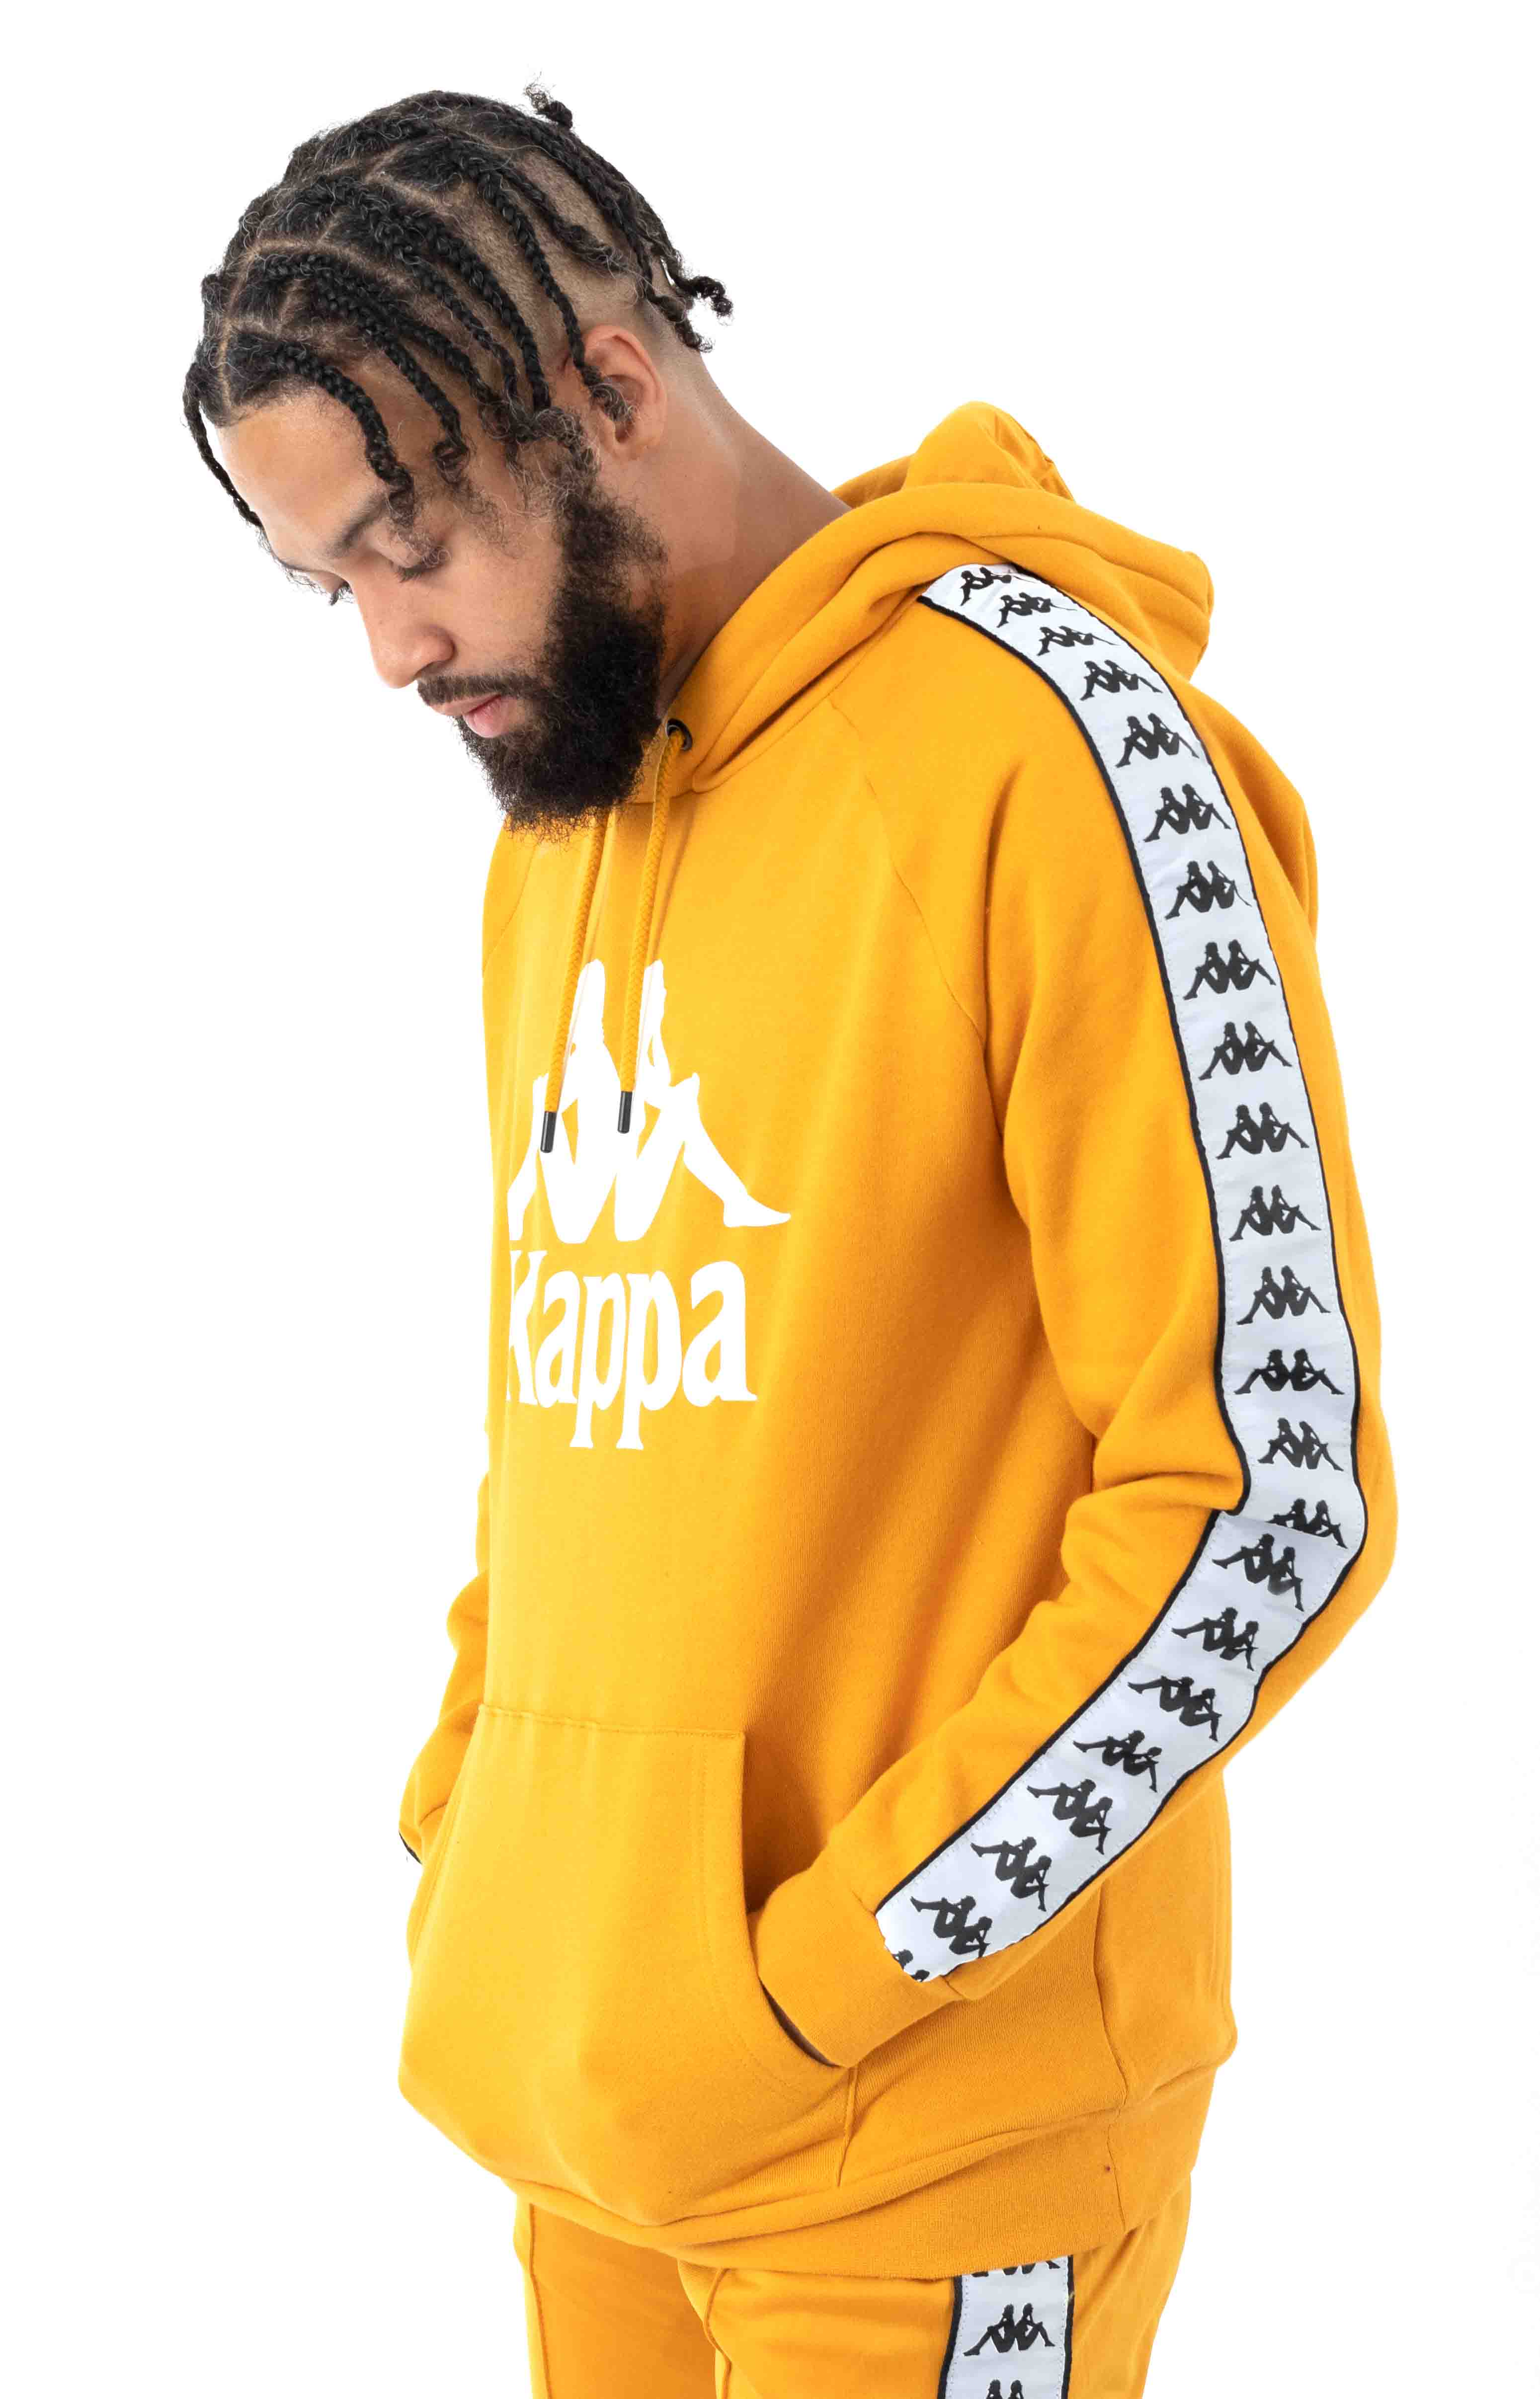 222 Banda Authentic Hurtado 2 Pullover Hoodie - Yellow Ochre/White 2